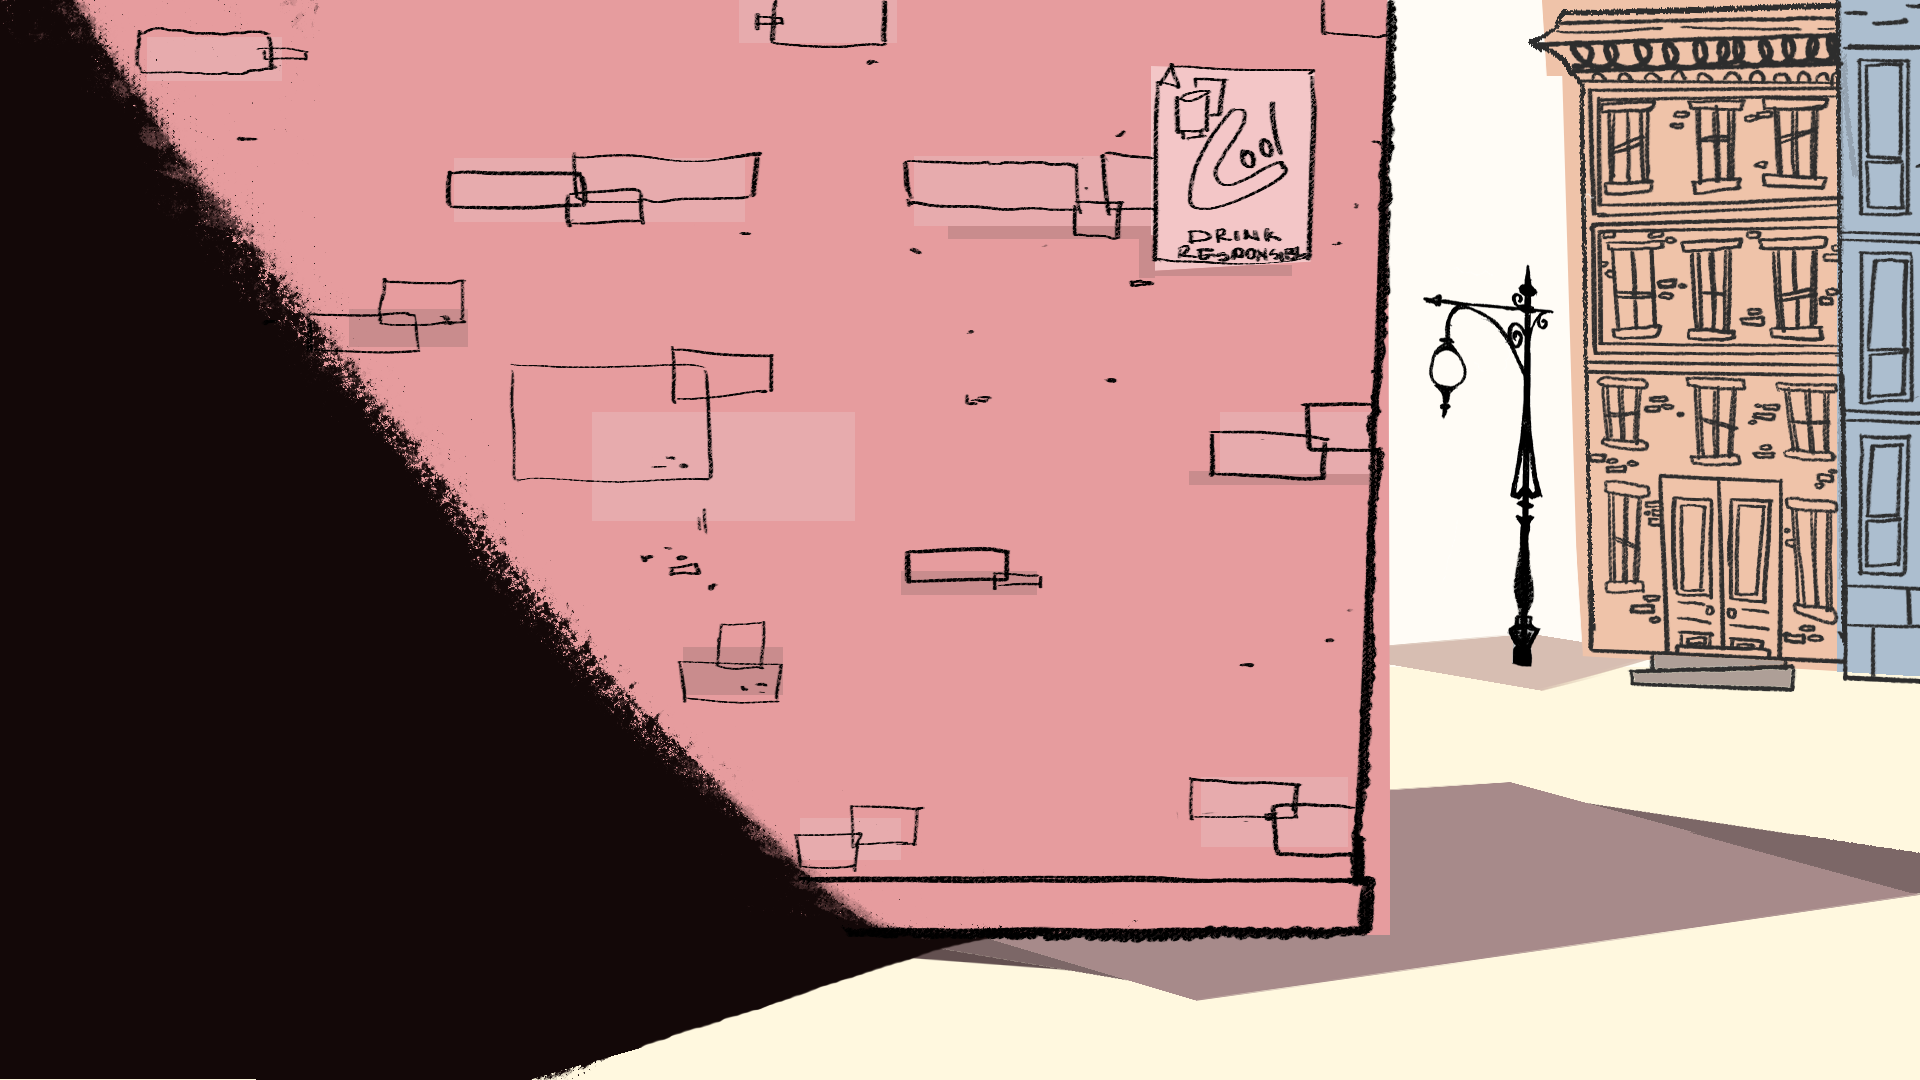 alleylayout_1.png